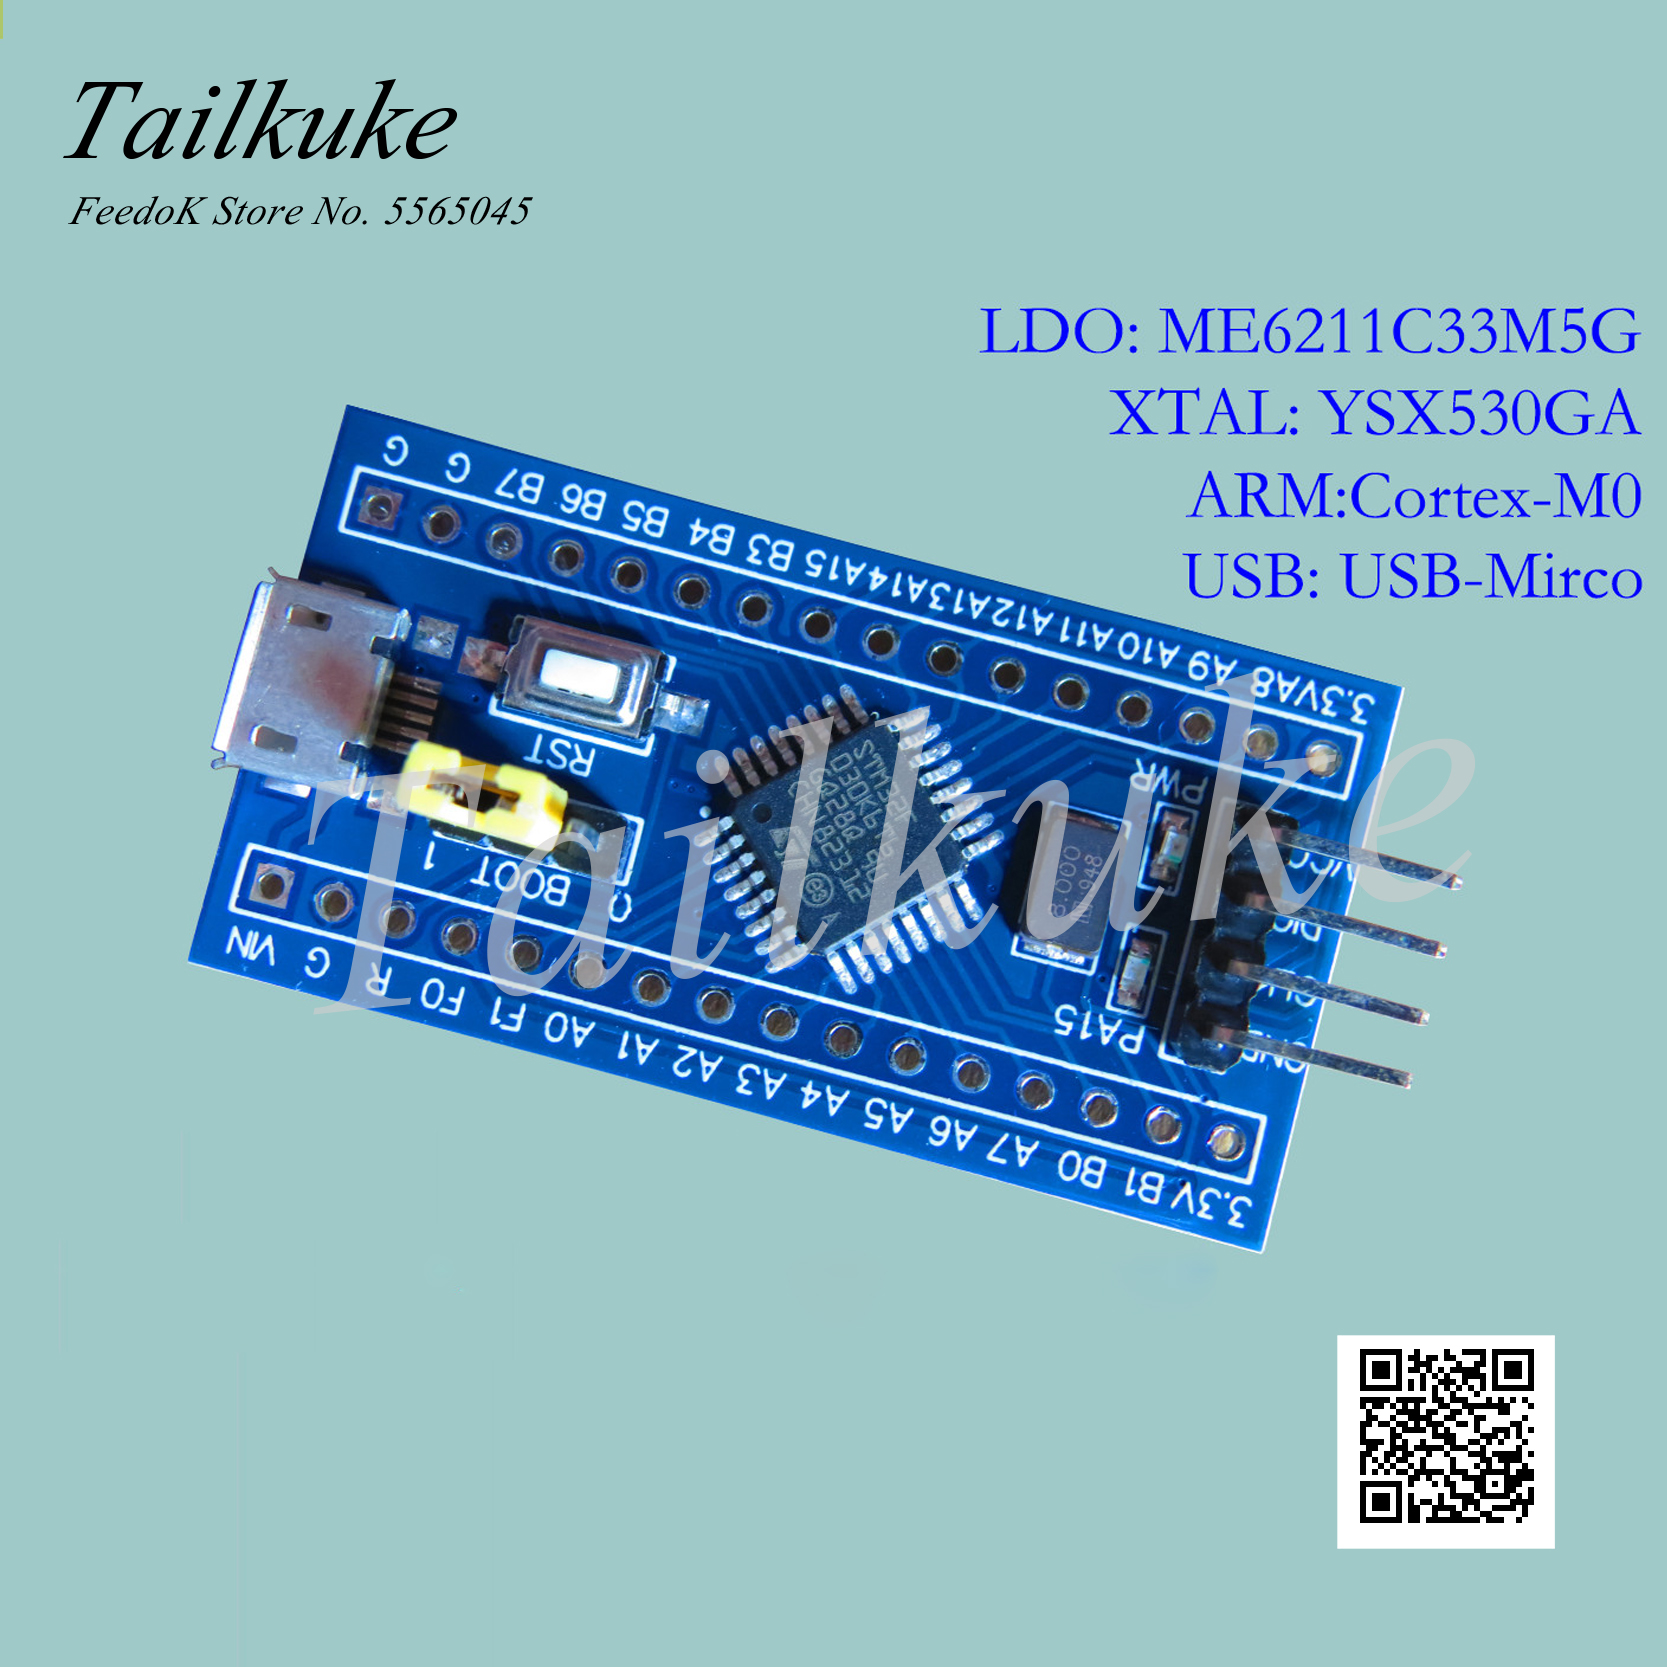 Stm32f030 Minimum System Stm32f030k6t6 Core Board Arm Promotion F0 Development Board Cortex-M0